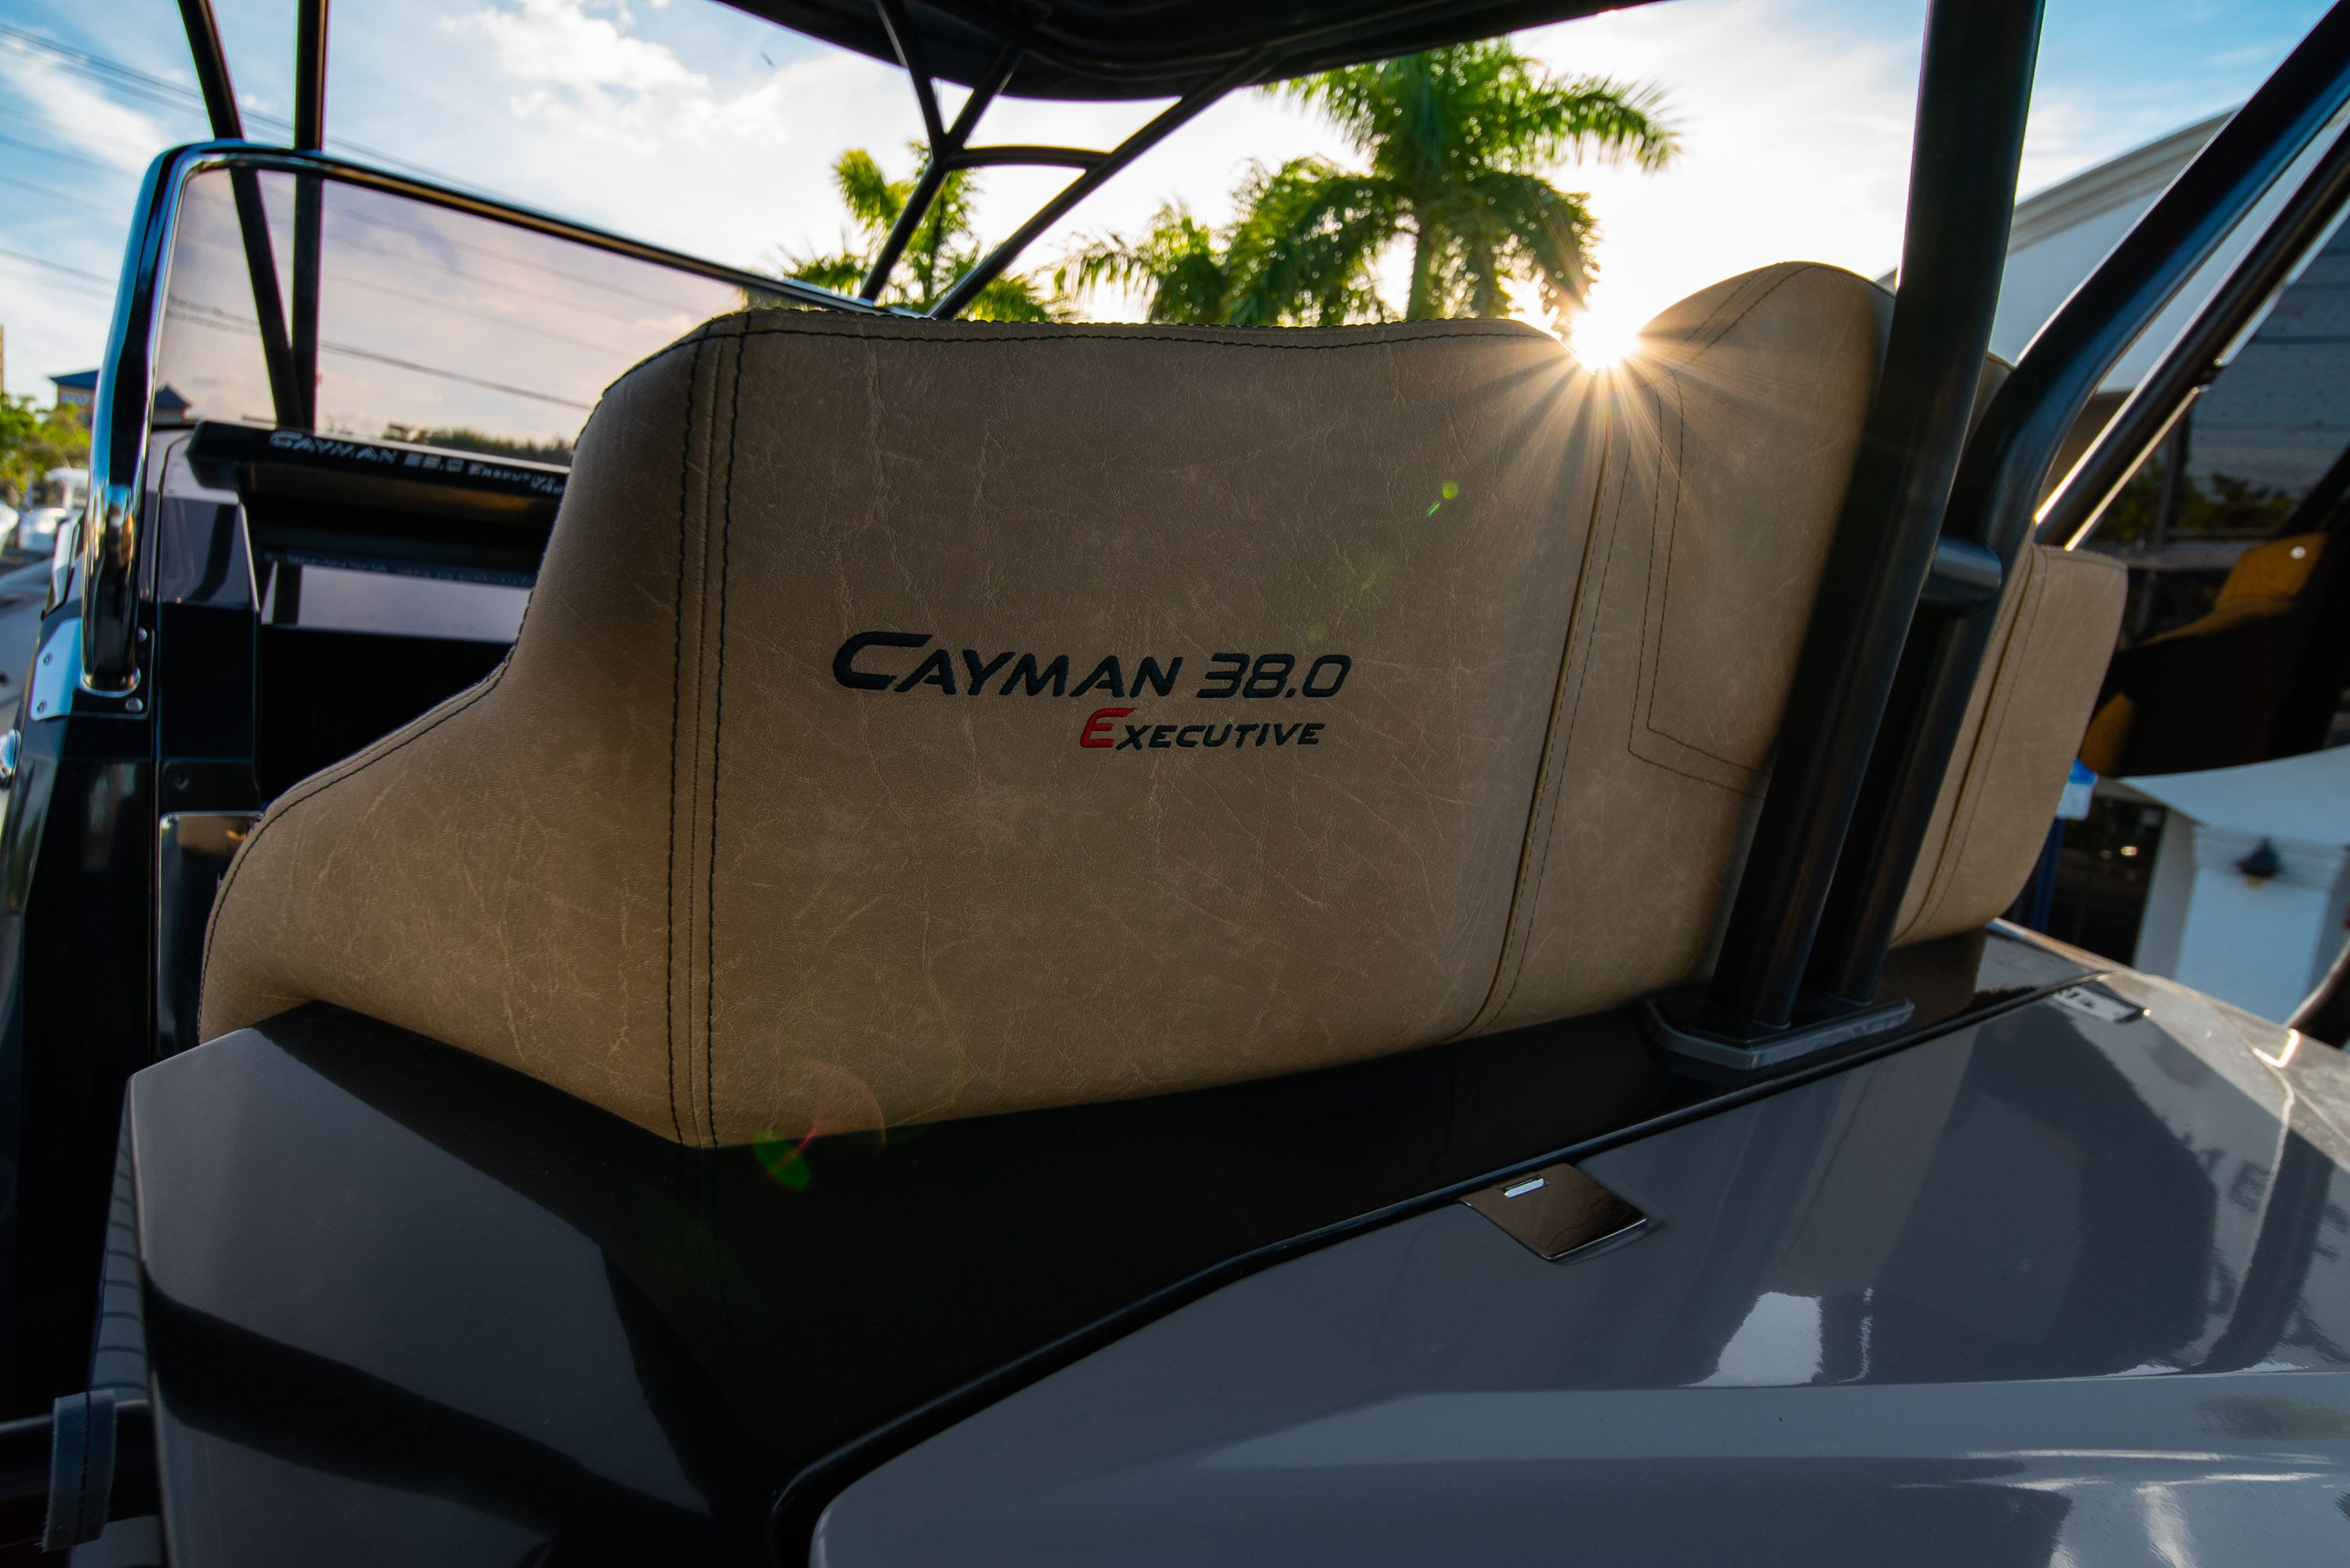 Thumbnail 14 for New 2019 Ranieri Cayman 38 Executive boat for sale in West Palm Beach, FL